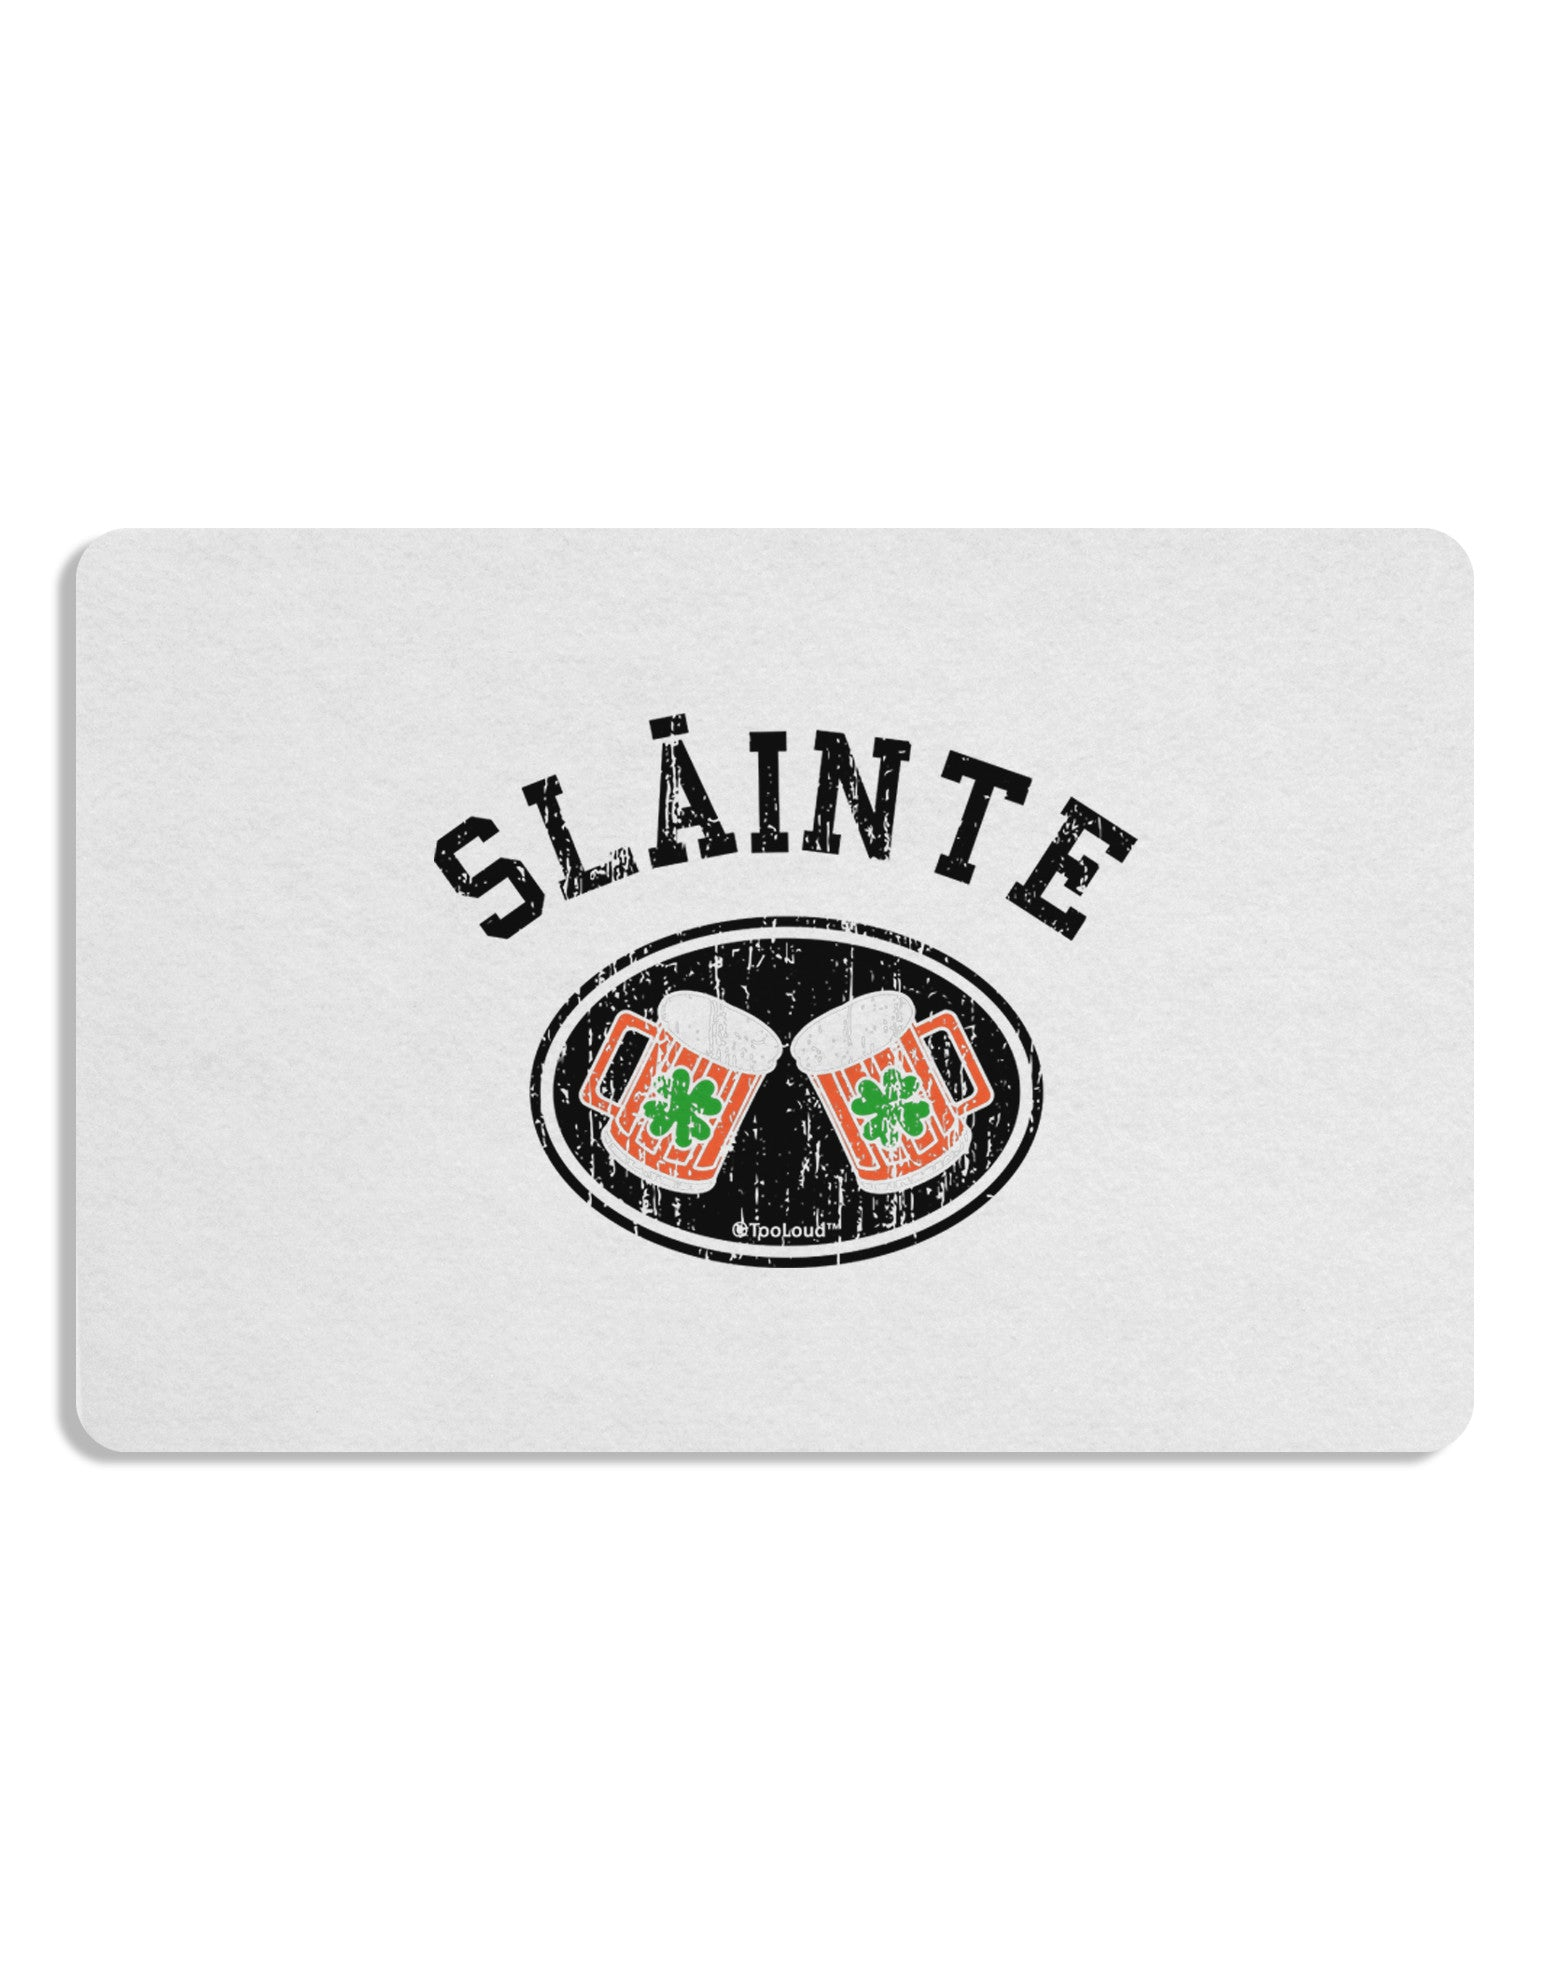 Slainte - St. Patrick's Day Irish Cheers Placemat by TooLoud Set of 4 Placemats